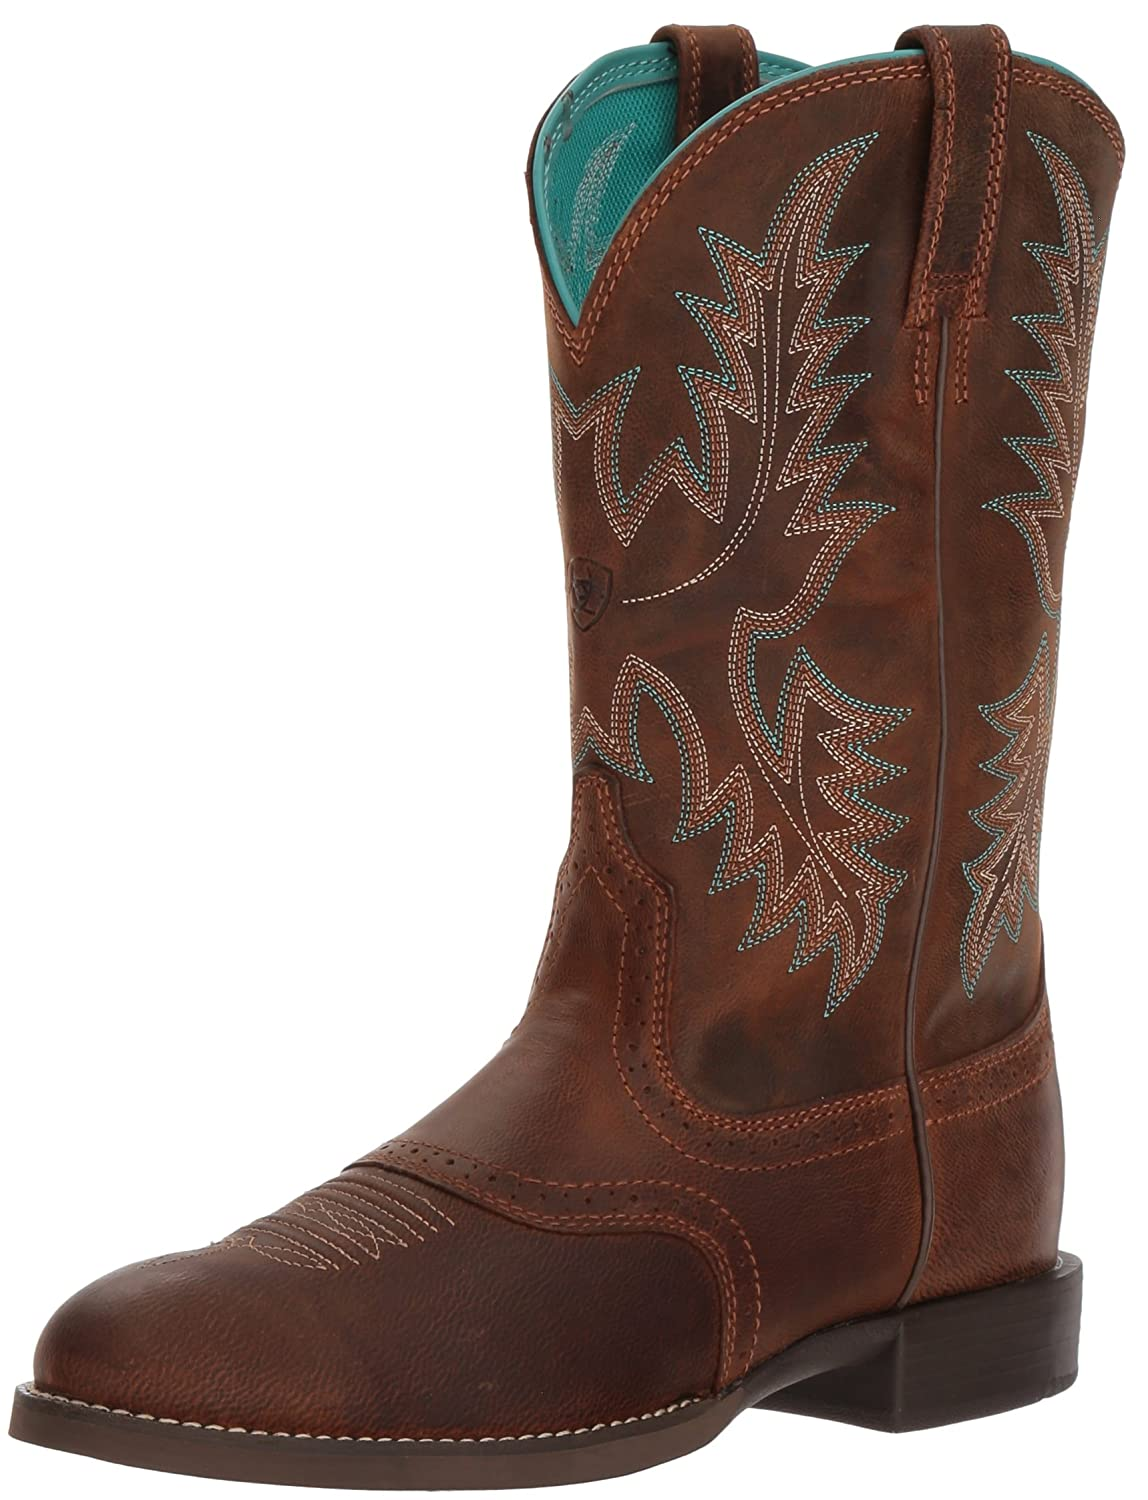 Ariat Women's Heritage Stockman Western Boot B076MGHMQG 11 M US|Sassy Brown